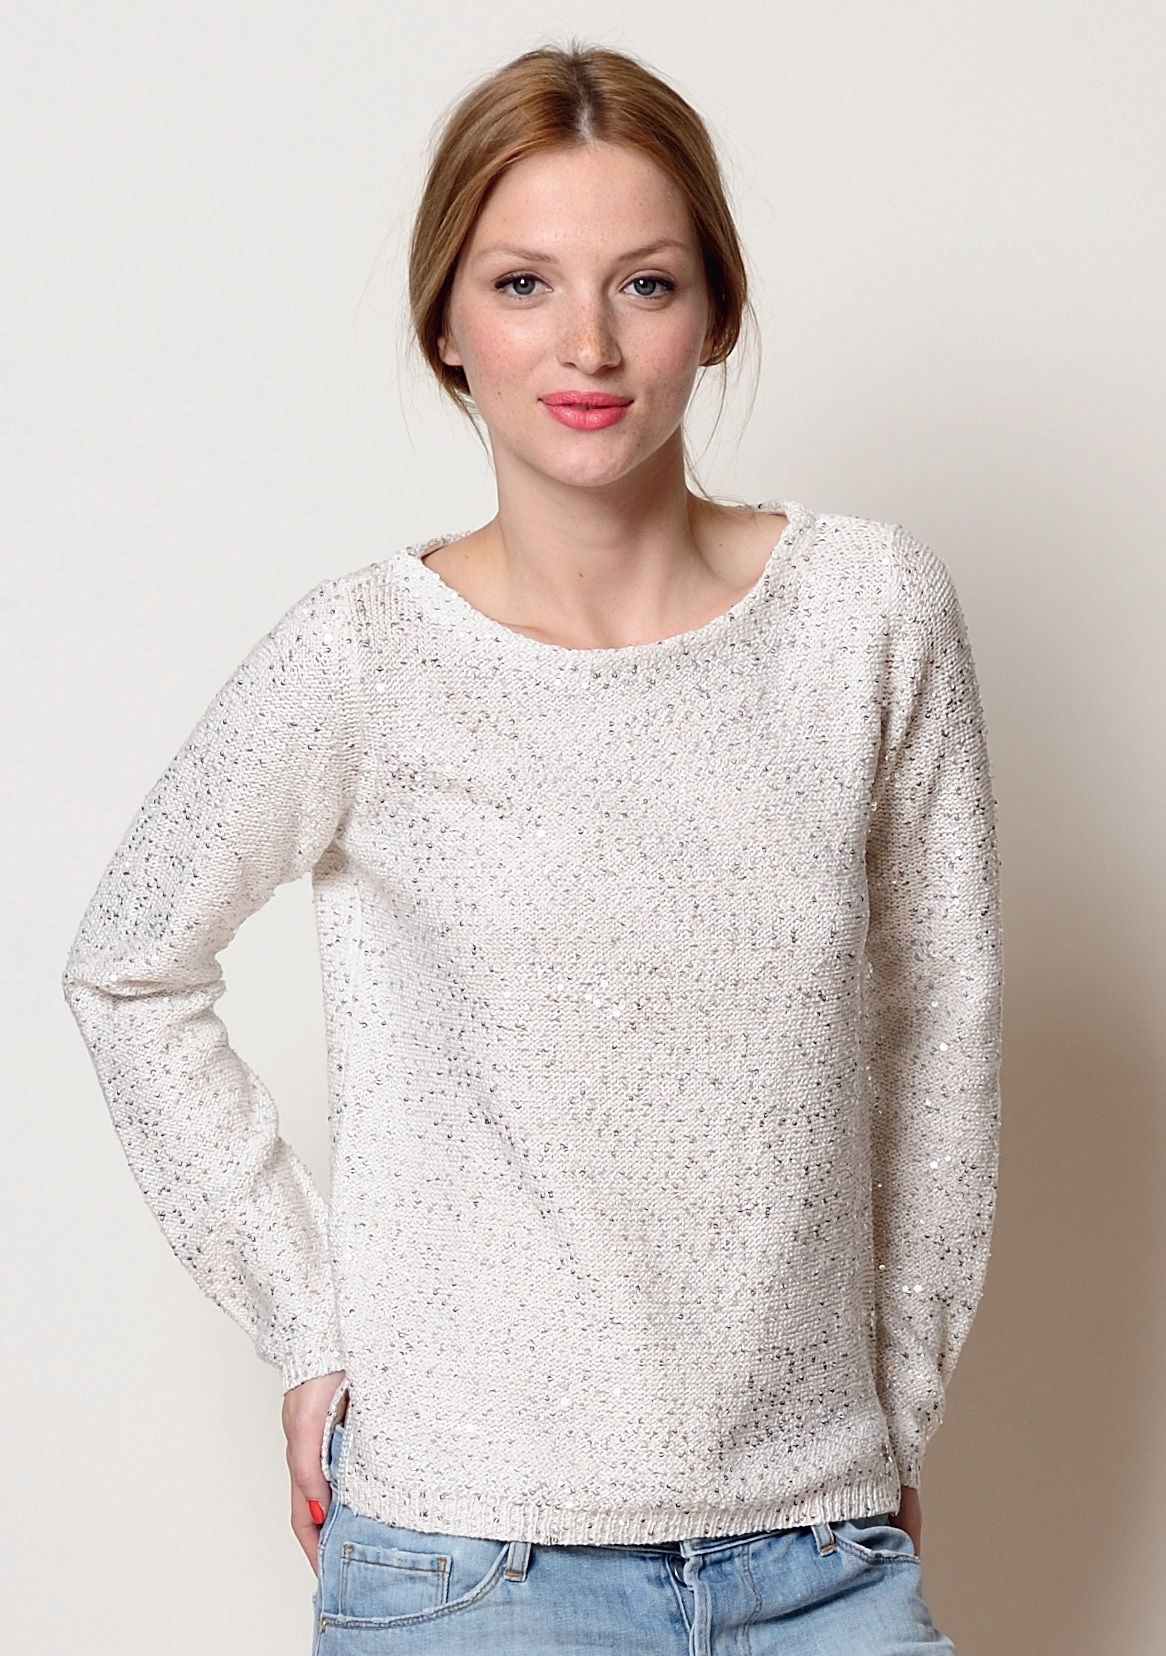 Sequinned jumper from Des Petits Hauts - stunning